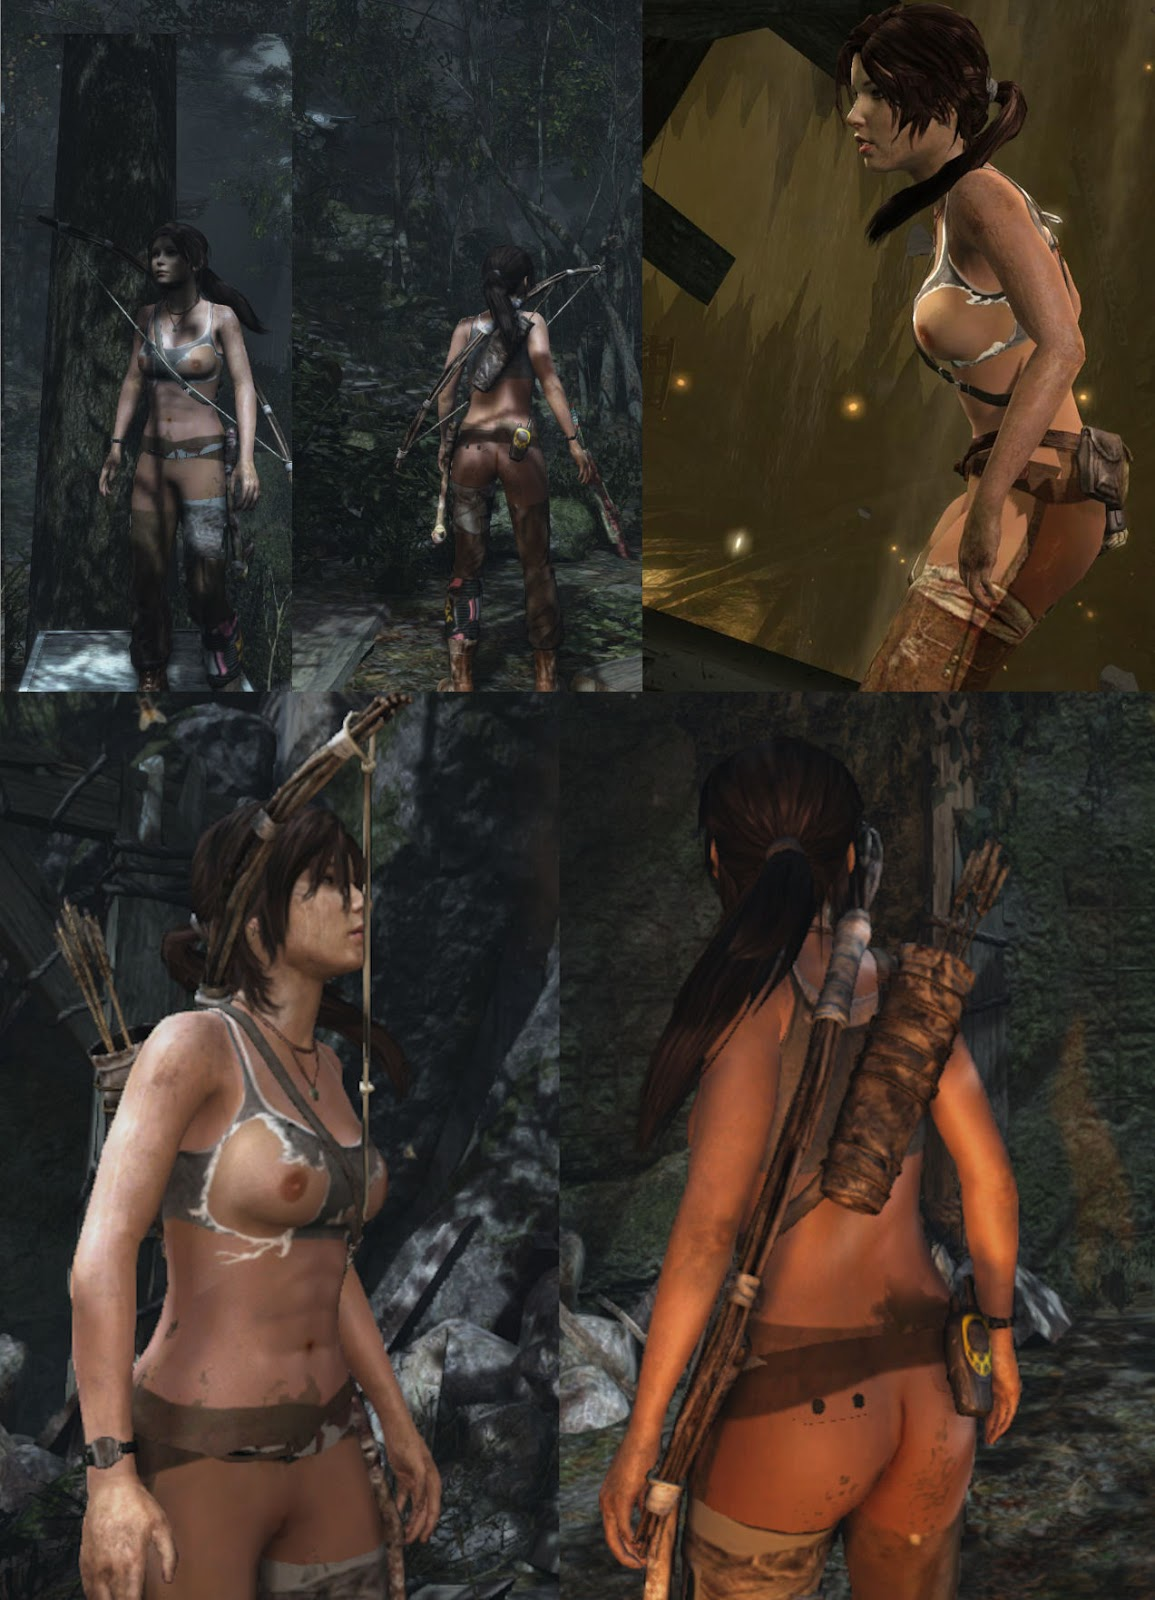 Tomb raider 2013 sex patch erotic galleries